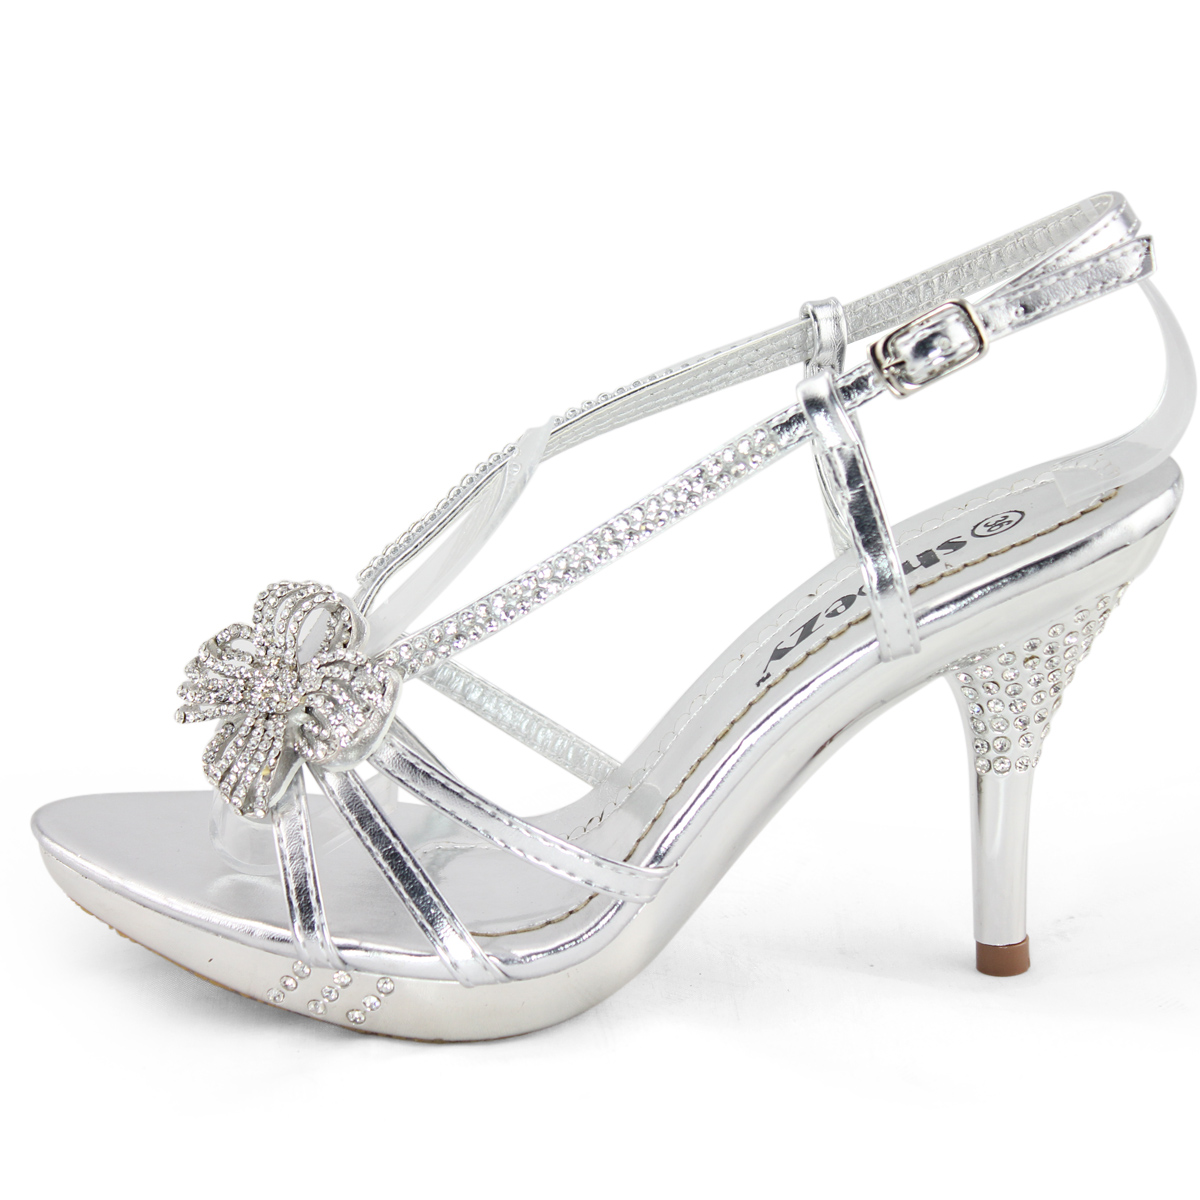 Laides silver satin diamante bridal wedding dresses platform heels shoes size 6